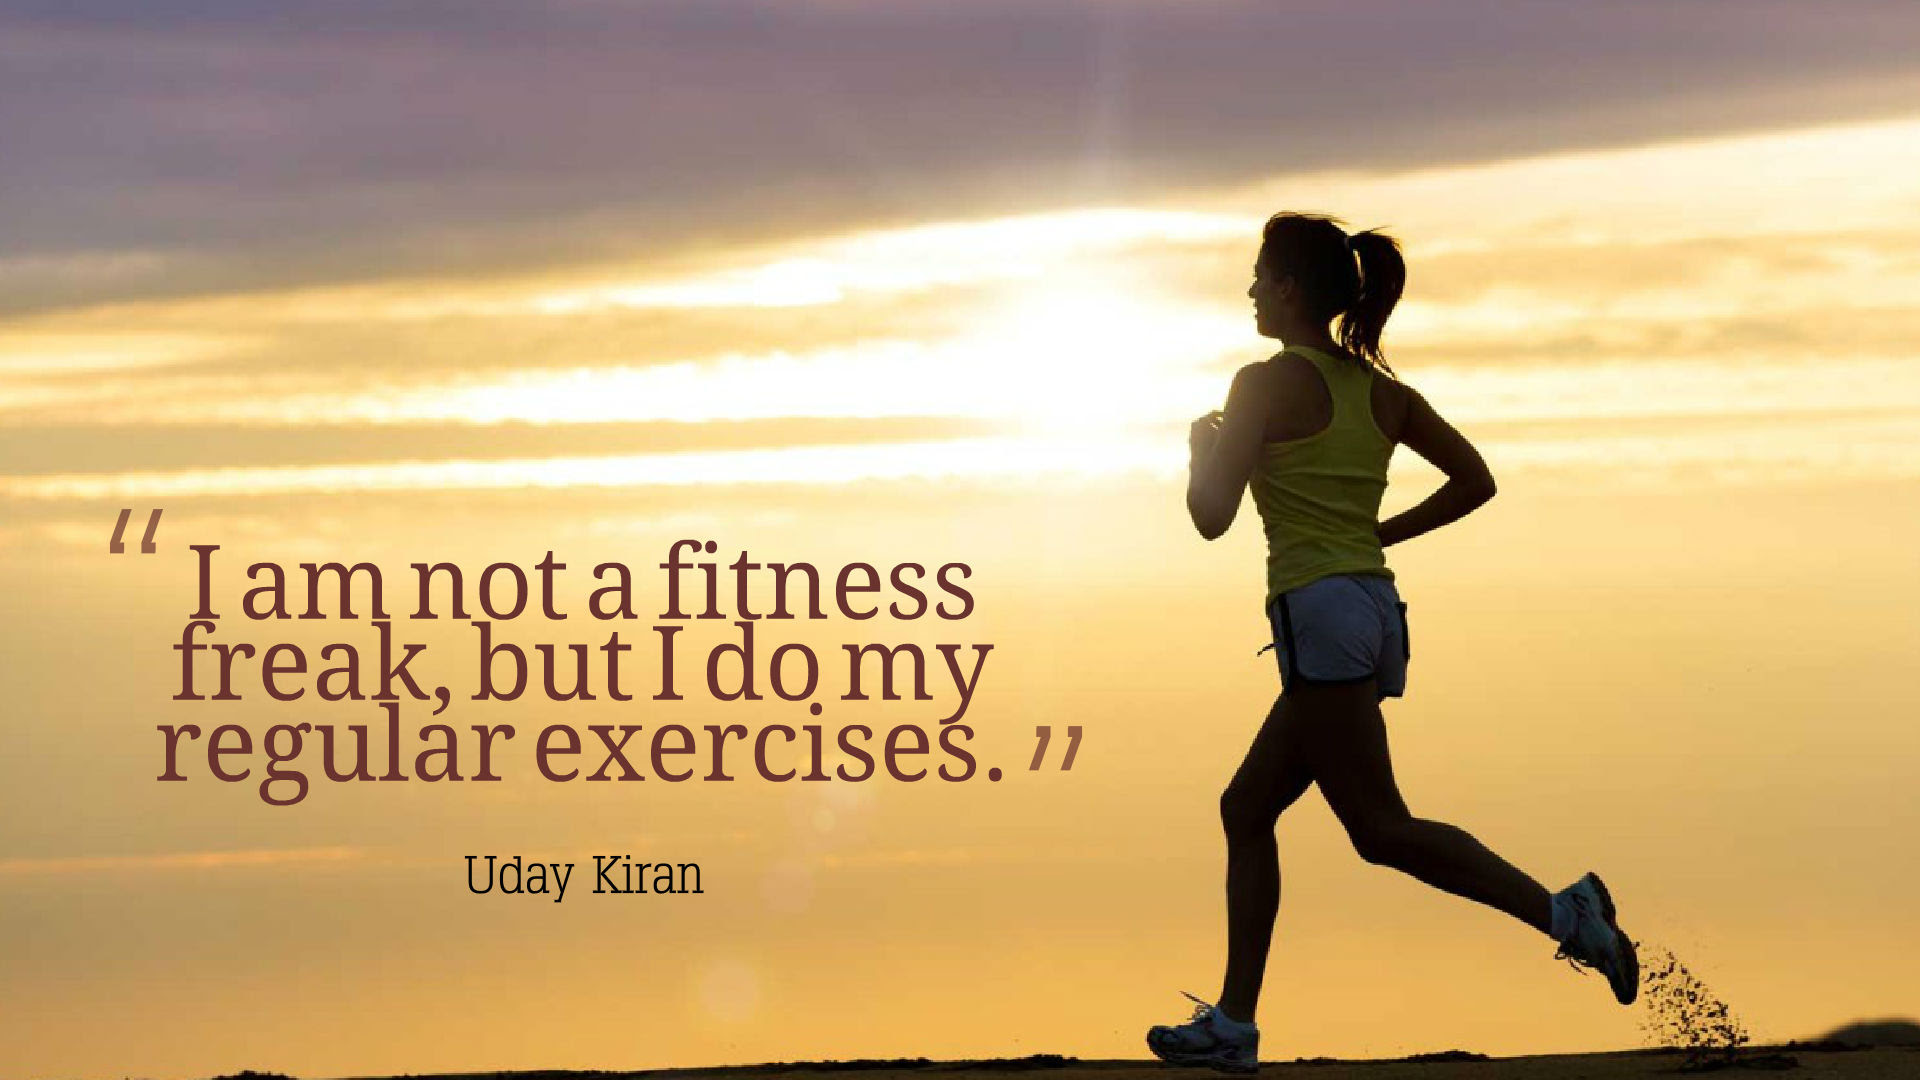 7 Fitness Quotes Wallpapers Hd Backgrounds Free Download Baltana